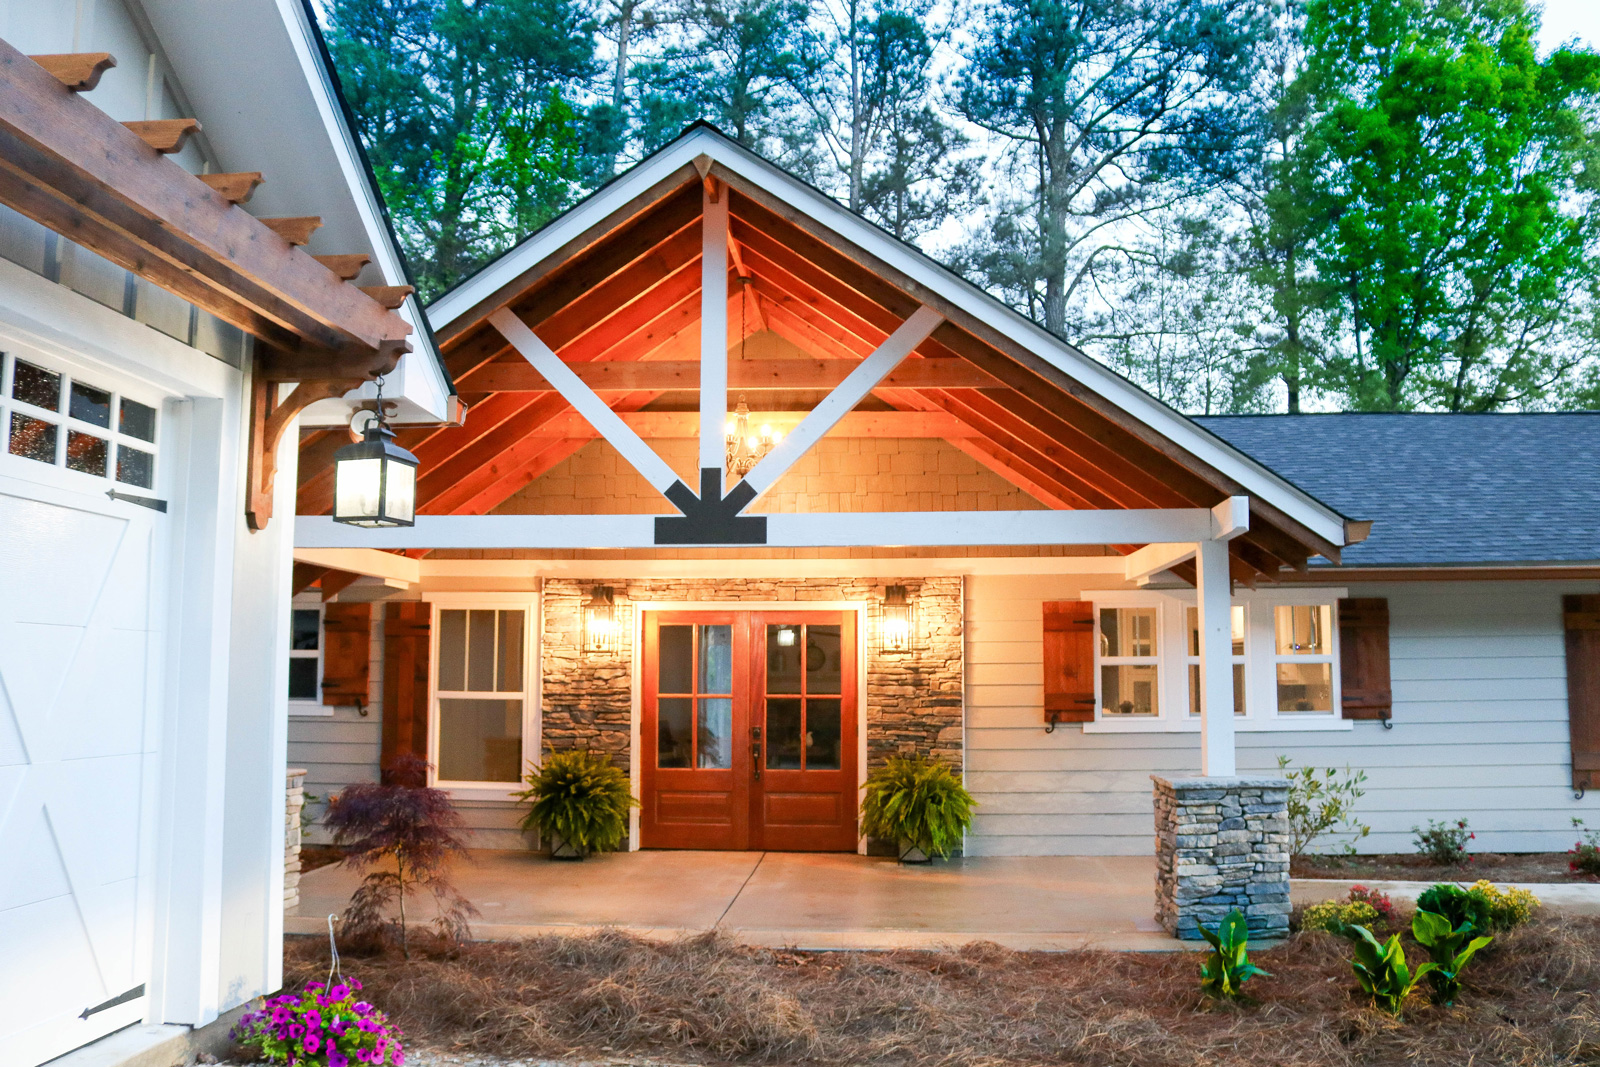 Home Builders in Ball Ground, Blue Ridge GA, Ellijay GA, North Georgia